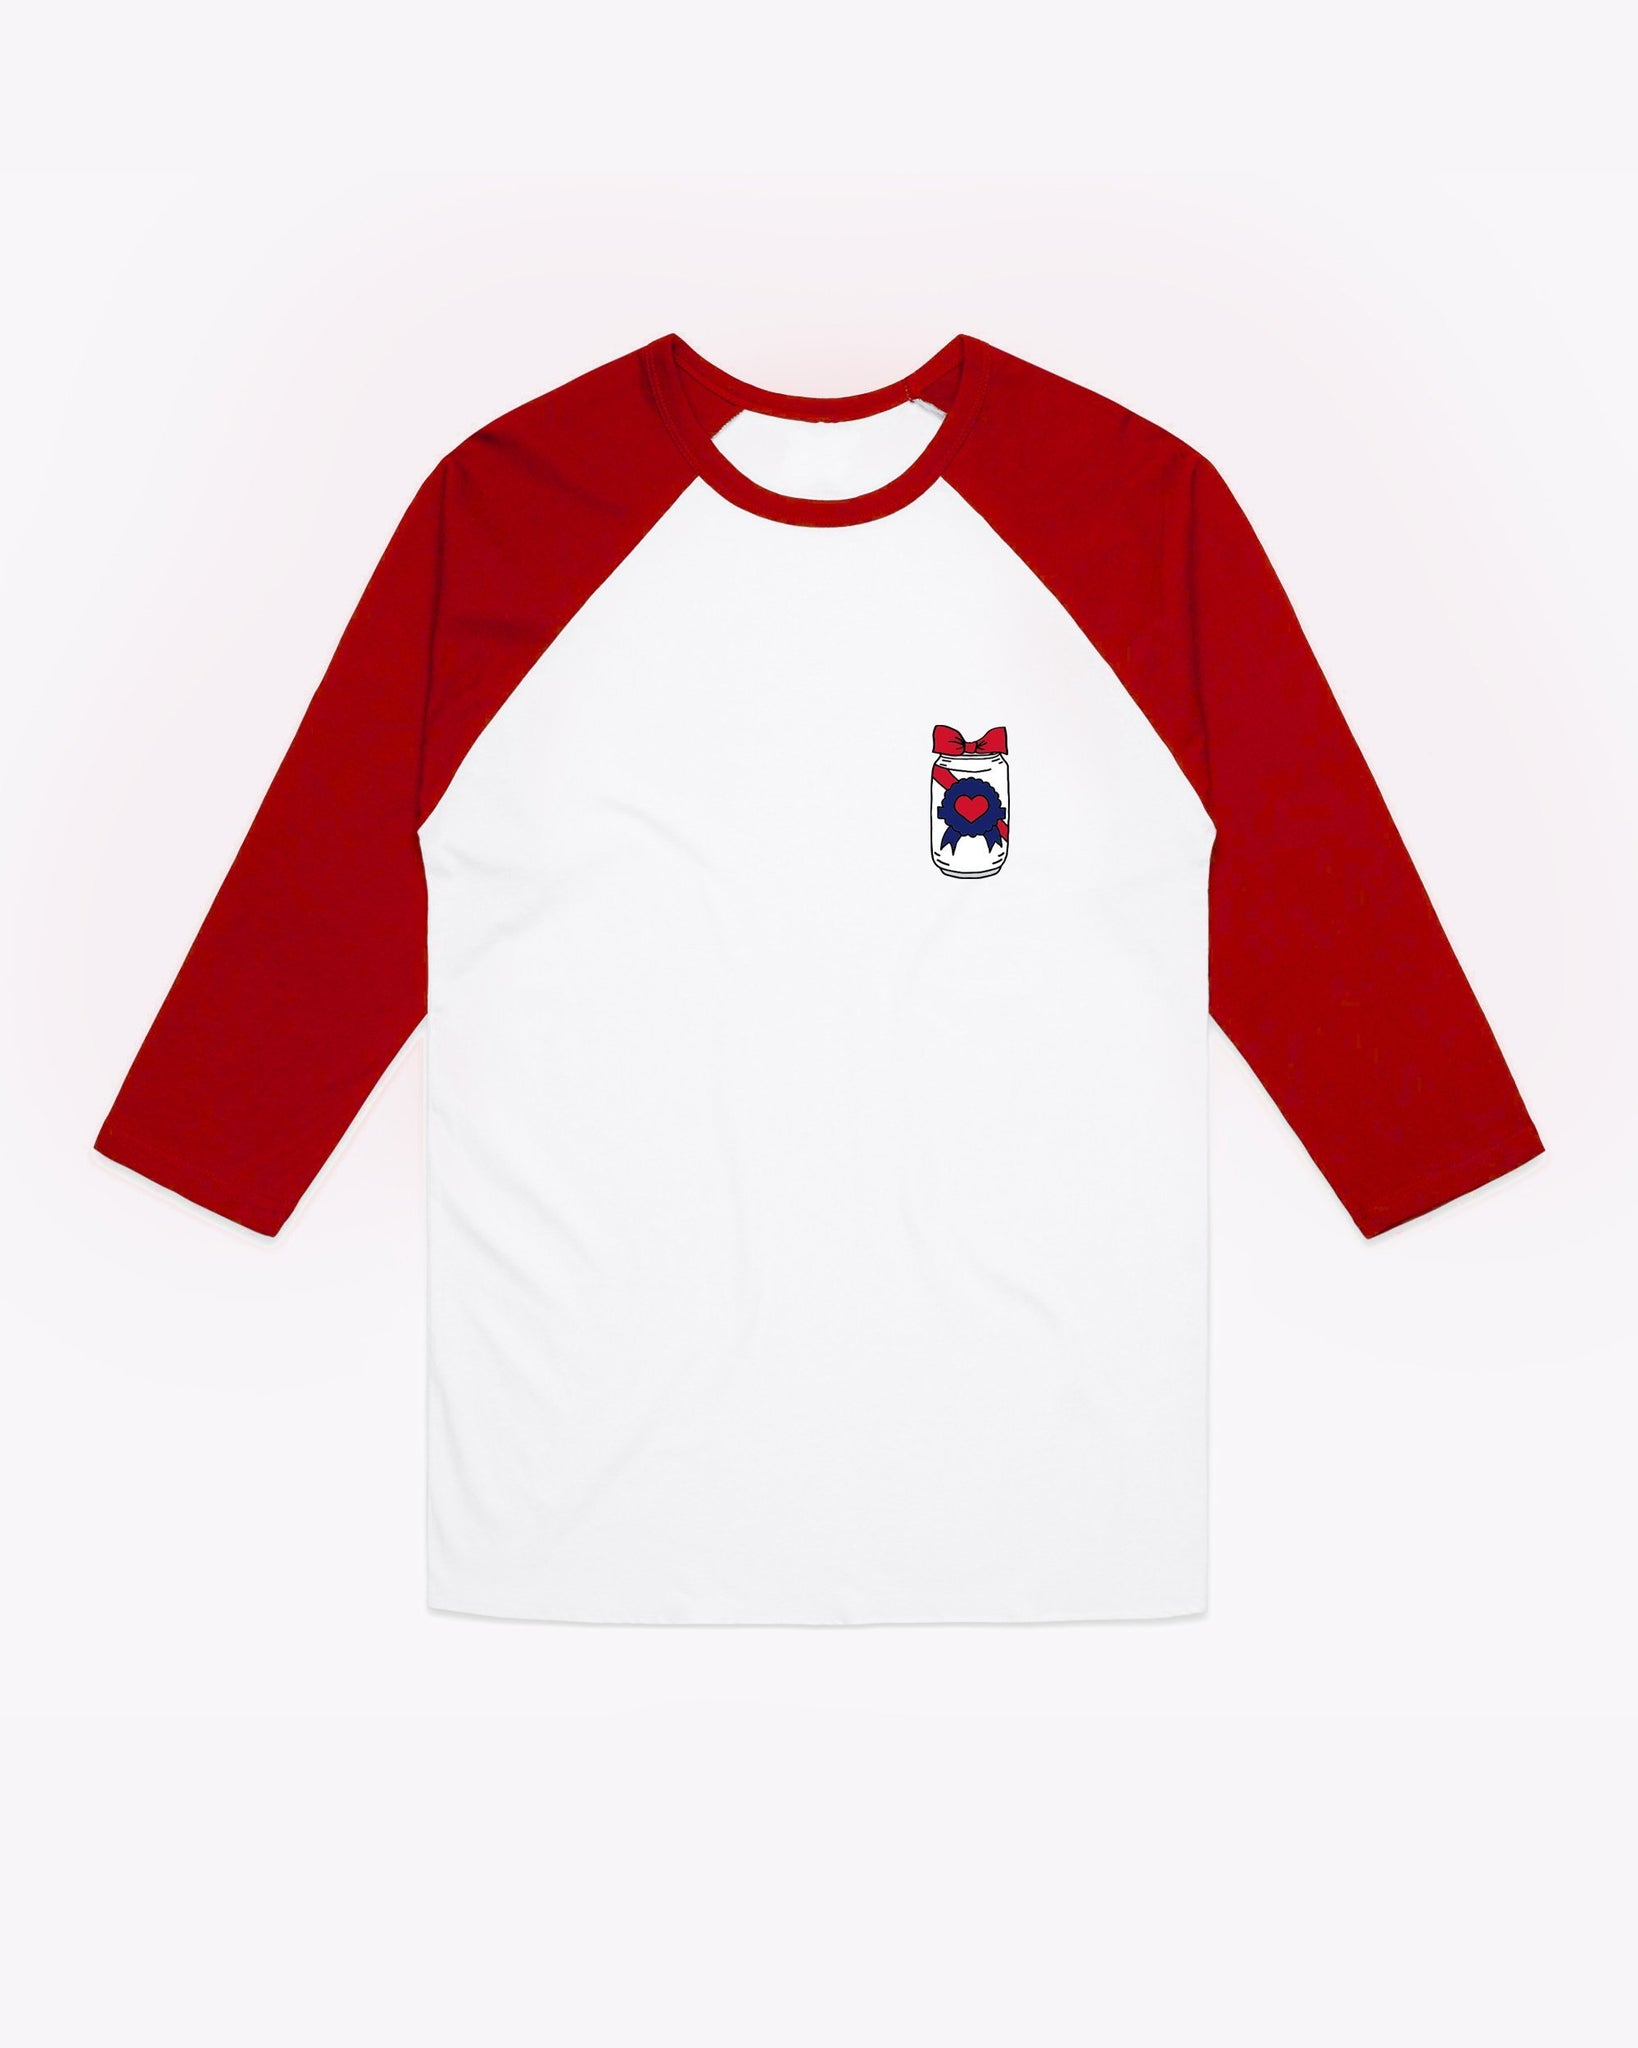 Drinking Buddy ¾ Raglan – Bow Can